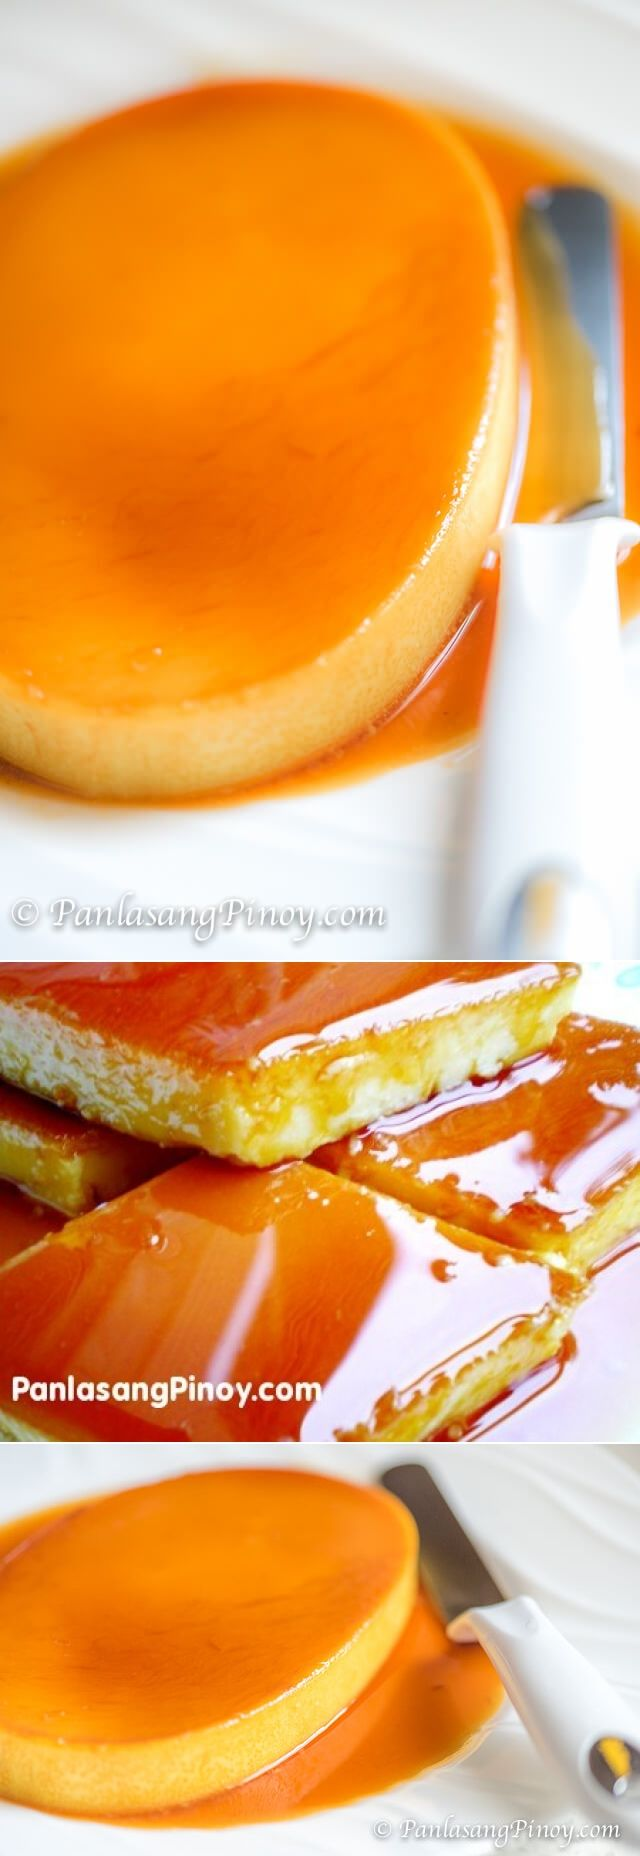 Leche Flan (also known as crème caramel and caramel custard) is a dessert made-up of eggs and milk with a soft caramel on top. This dessert is known throughout the world (especially in Europe) and has been in the dessert menu of most restaurants because of its convenience in preparation and long shelf life.